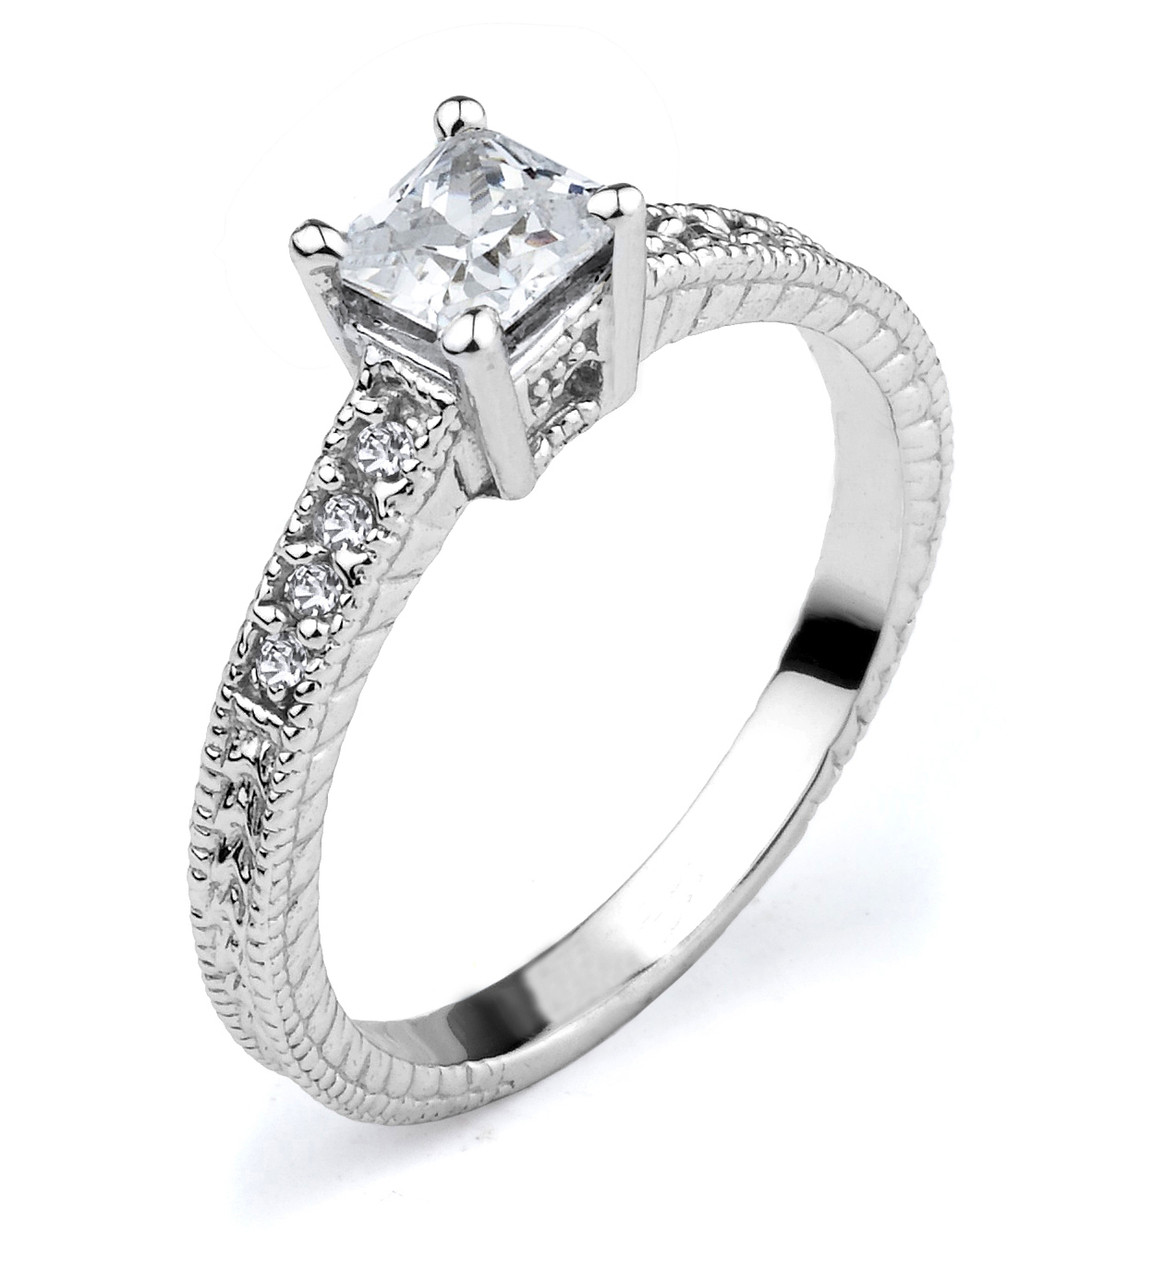 engagement ring cz engagement ring white gold cz